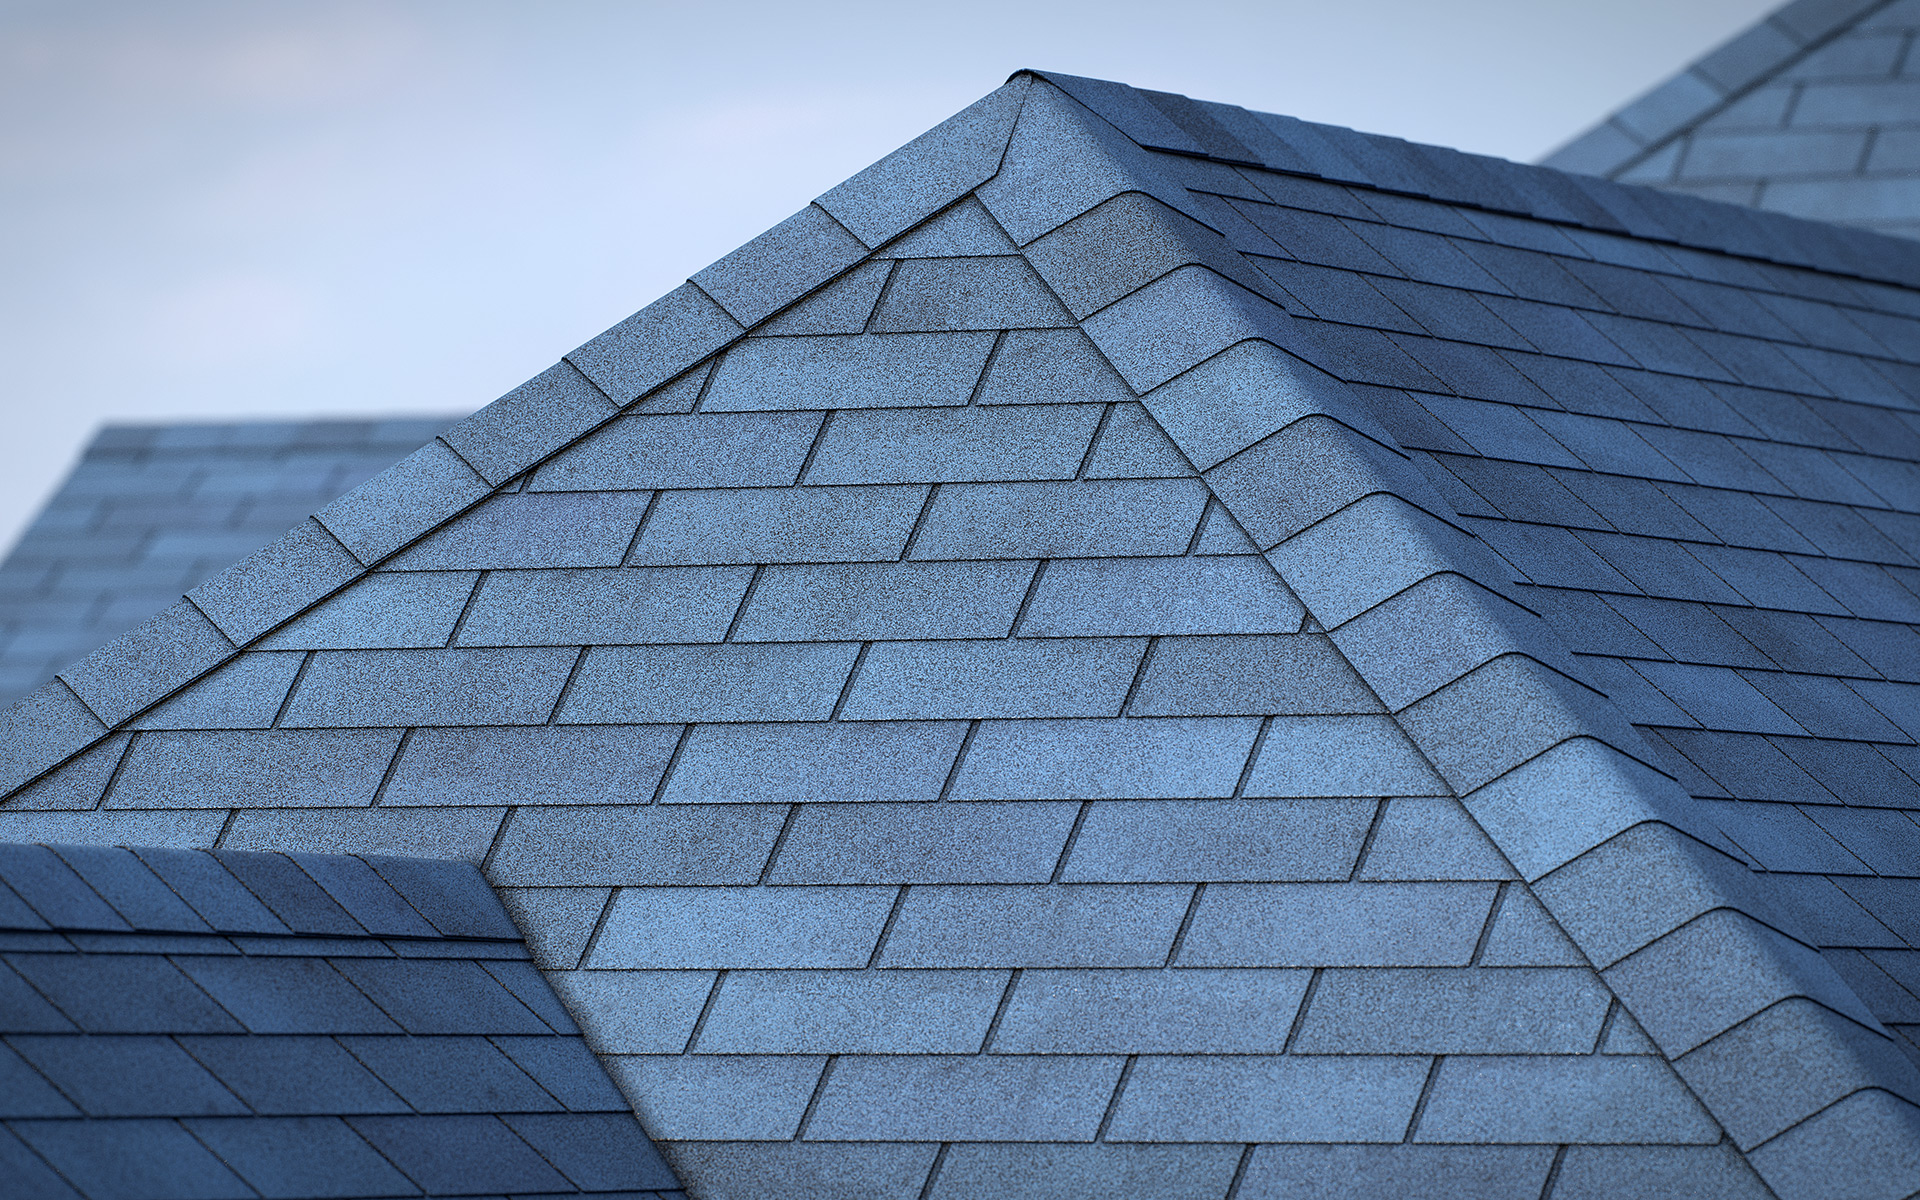 3-tab asphalt roof shingles blue color 3D model preset for 3dsmax and RailClone. Rendered with vray, made for arch-viz.